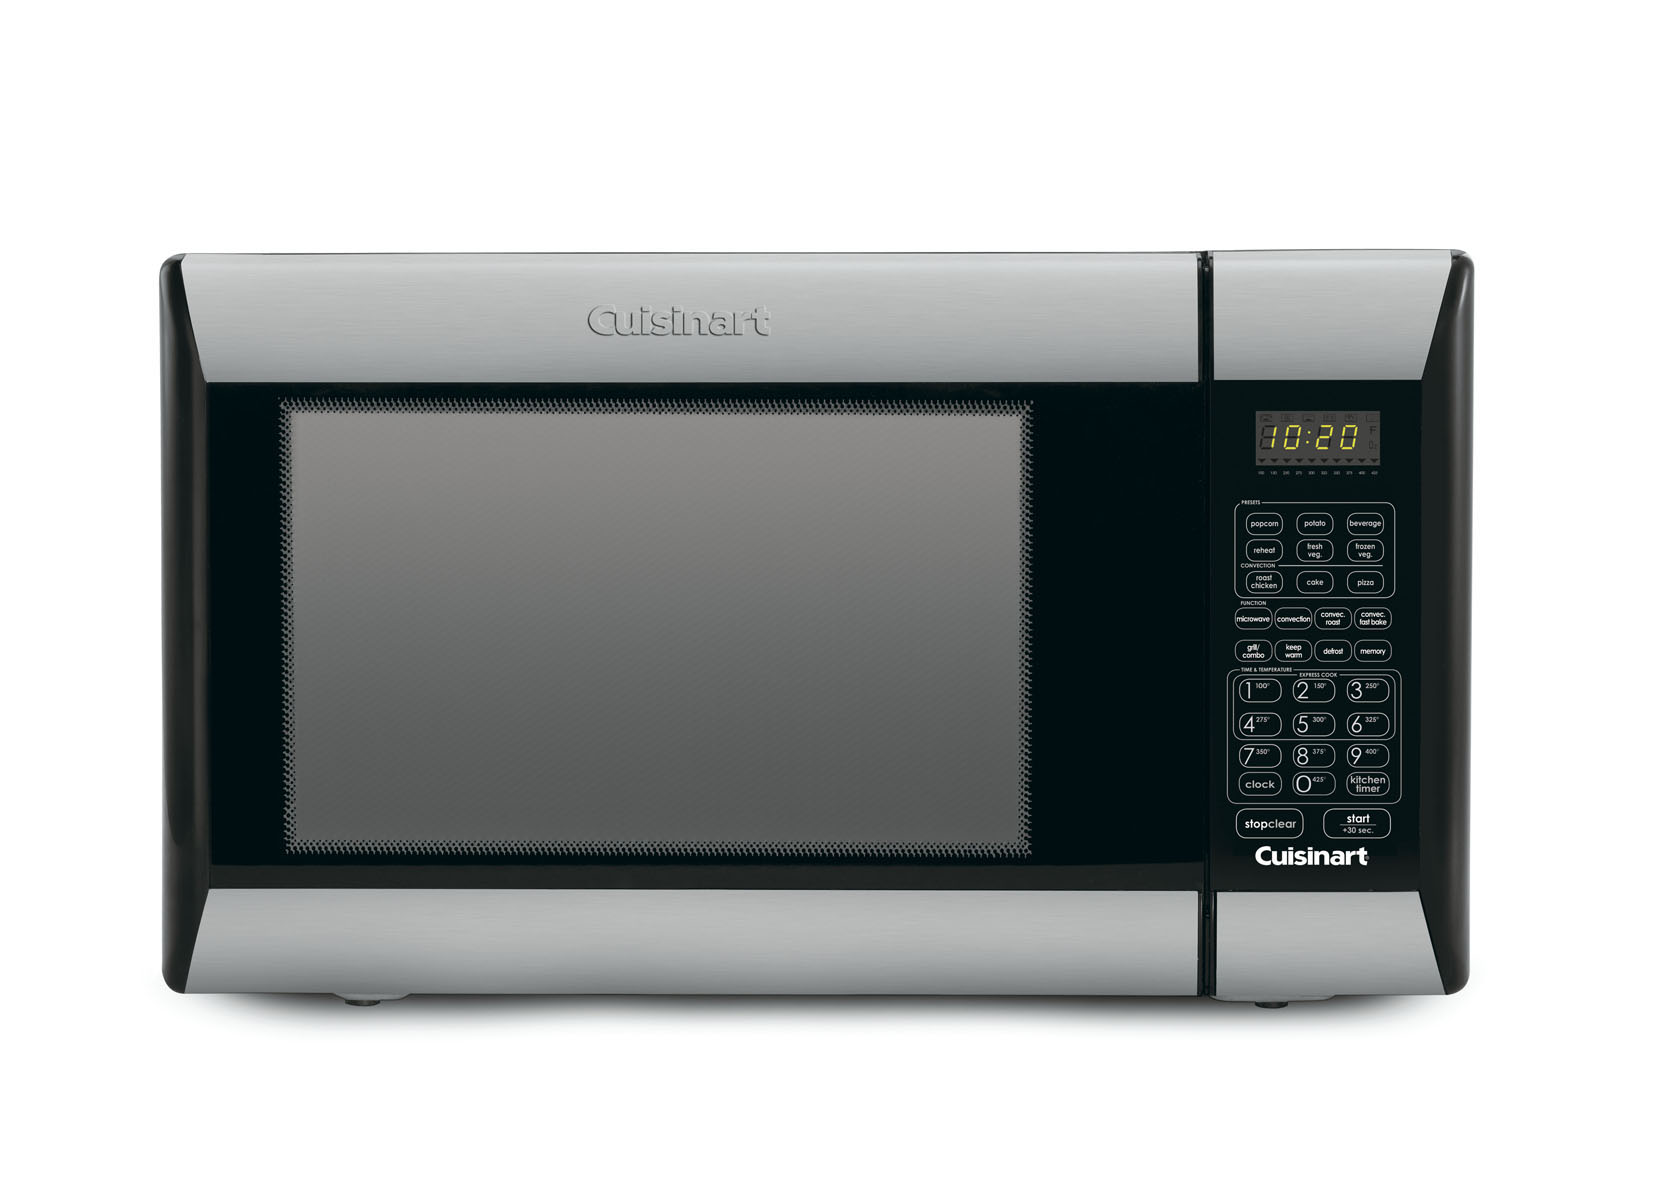 cuisinart 1 2 cu ft microwave convection oven and grill stainless steel